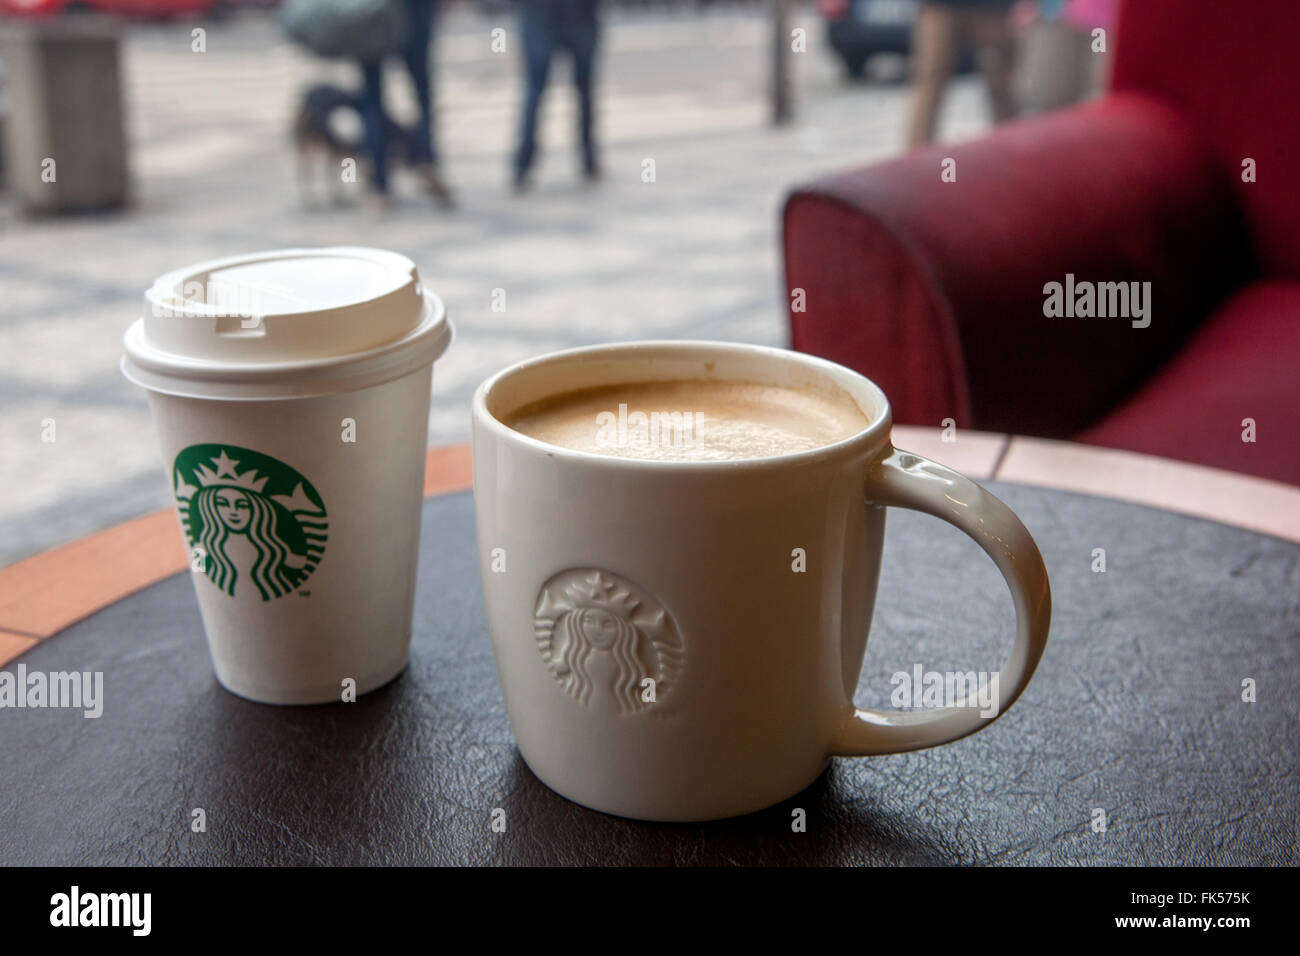 Photosamp; Stock Starbucks Coffee Starbucks Cup DE9H2I